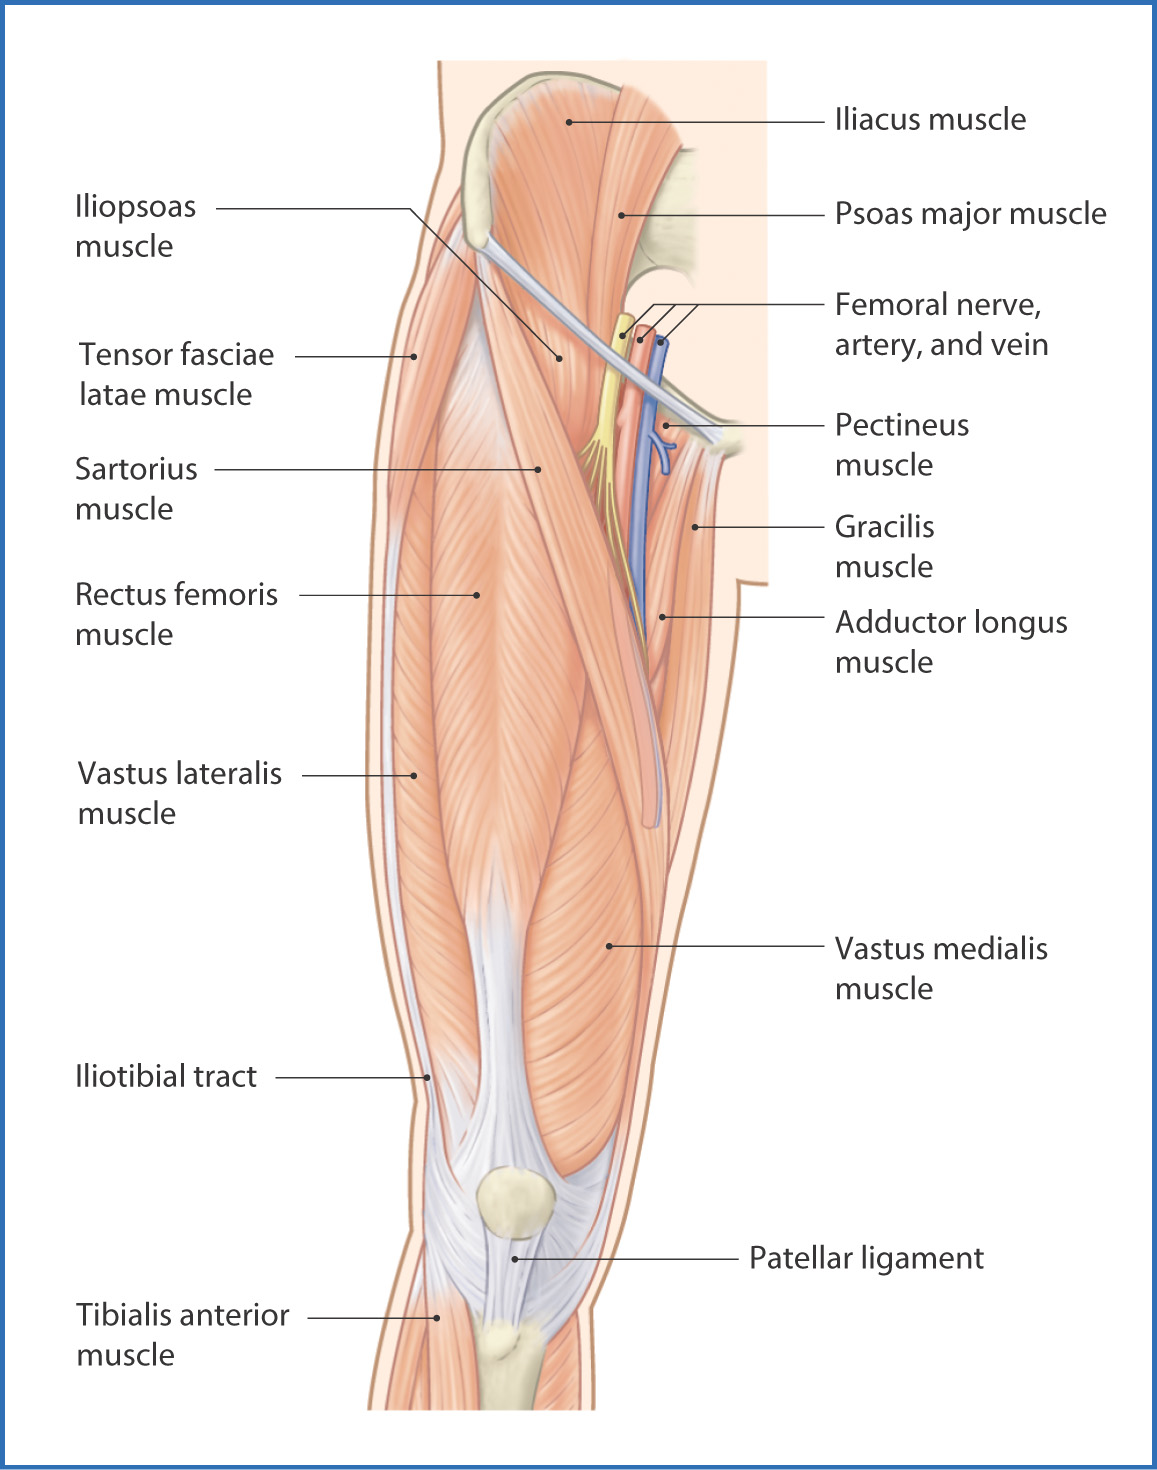 anteromedial thigh | basicmedical key, Muscles